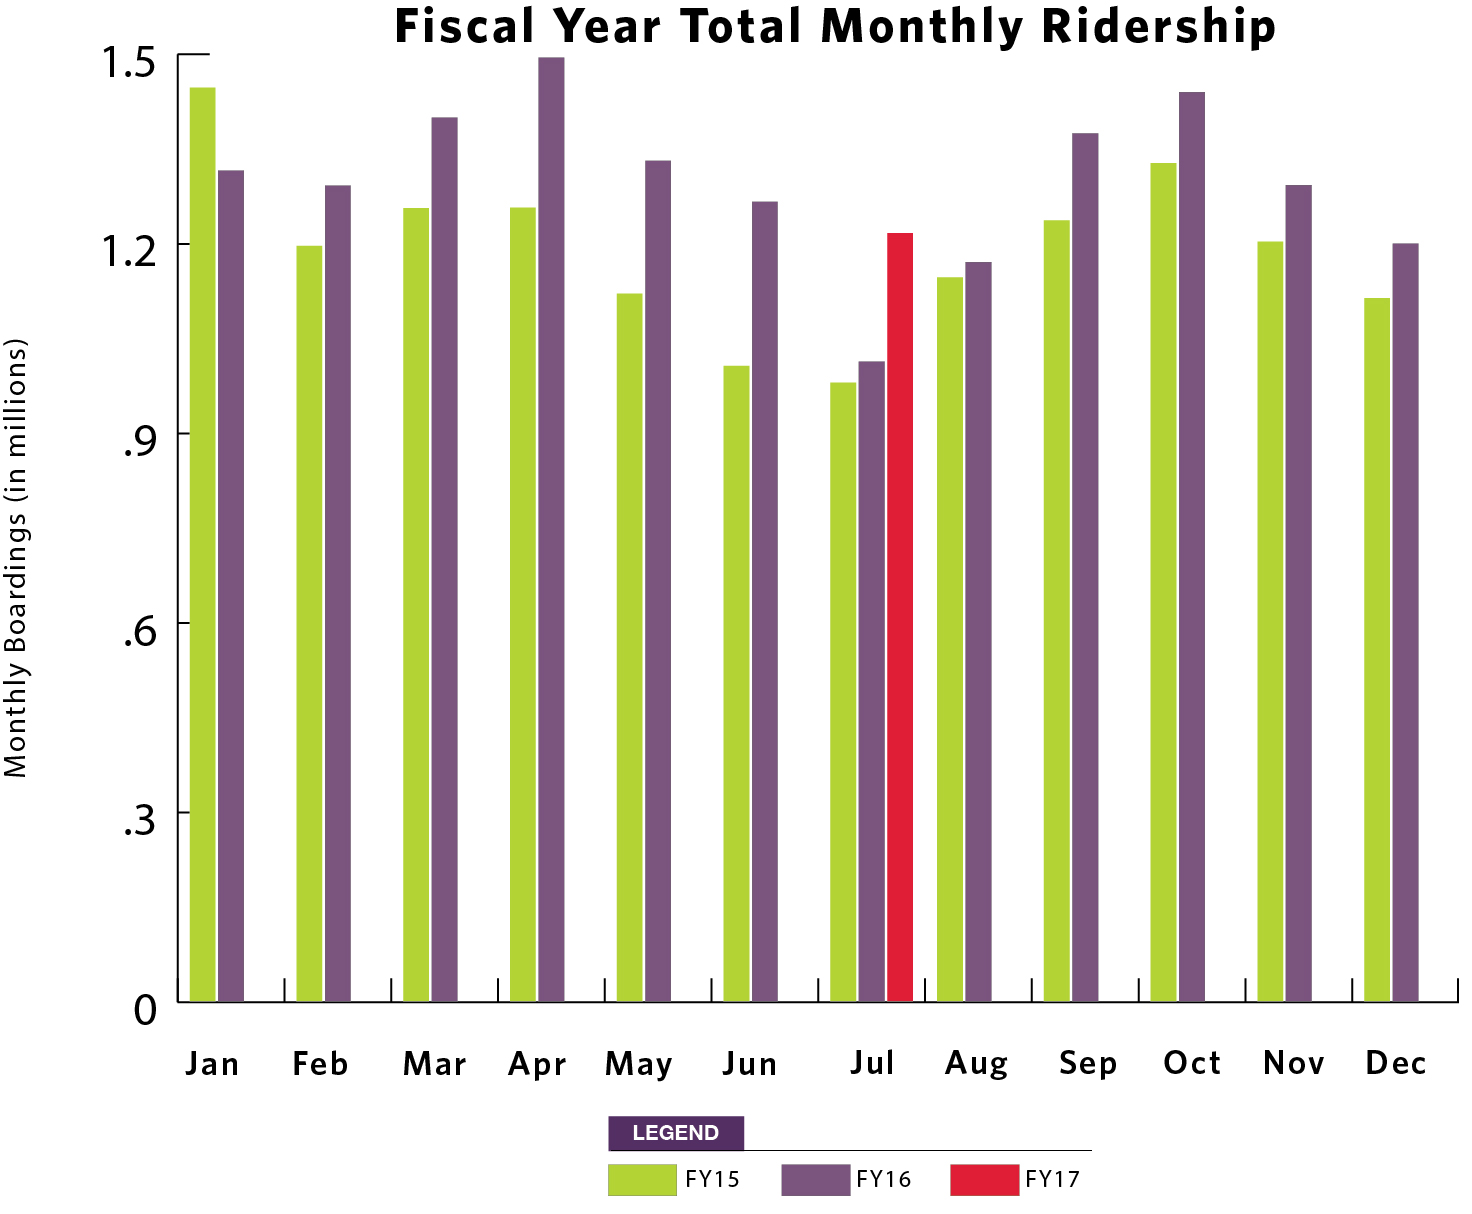 Fiscal Year Total Monthly Ridership